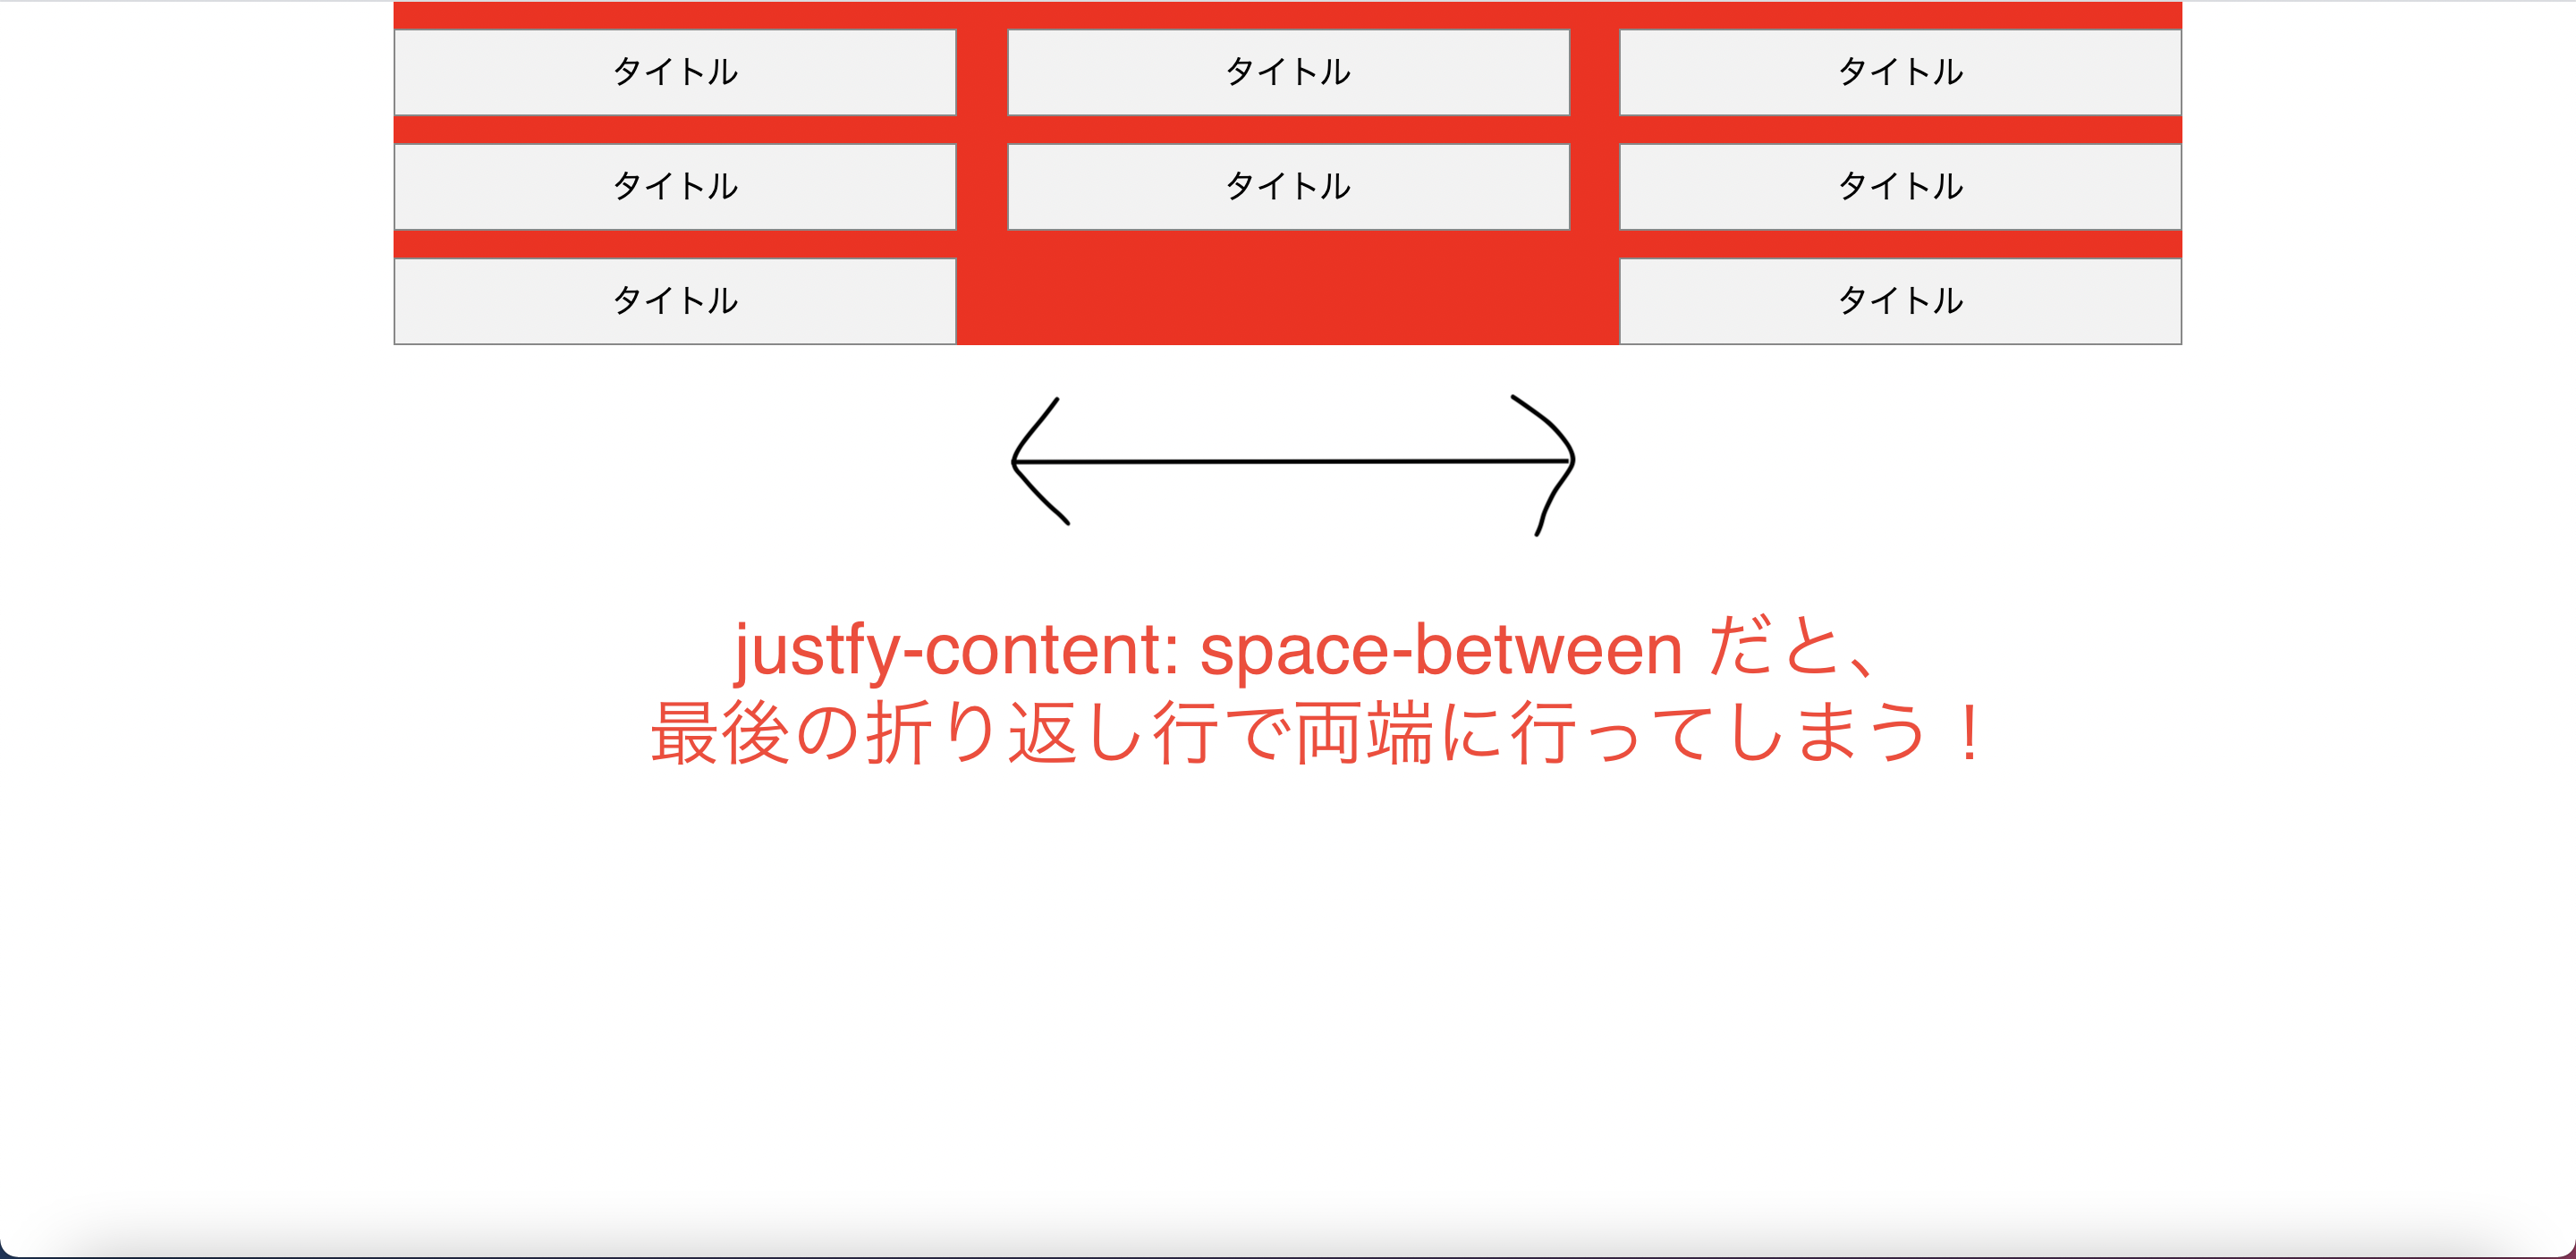 justify-content:space-betweenで配置すると、折り返した行の要素が端と端に配置されてしまう